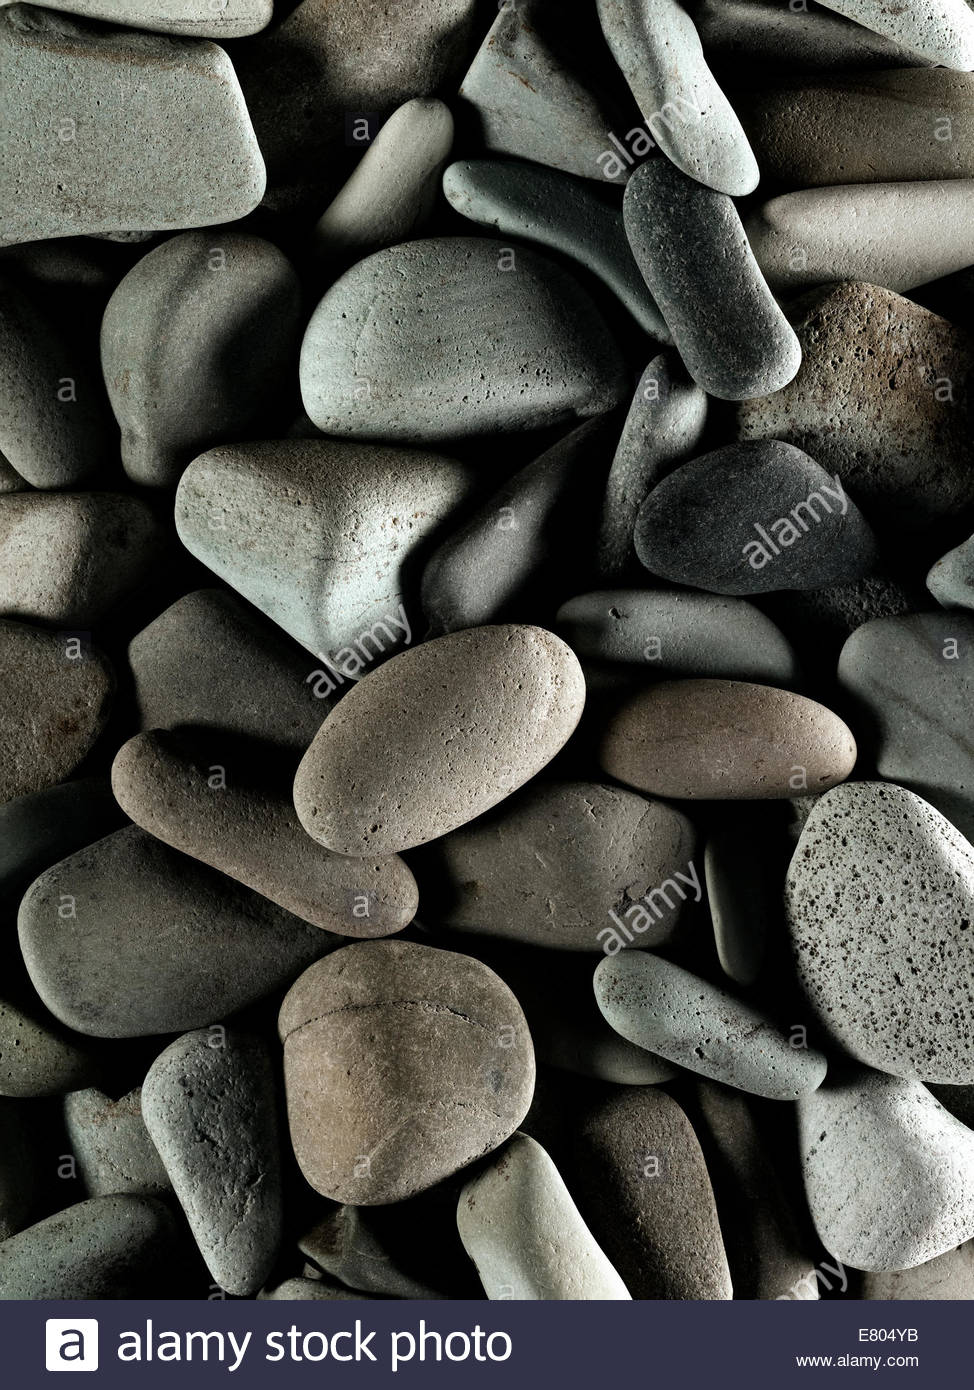 River or beach stone, perfect for backgrounds Stock Foto